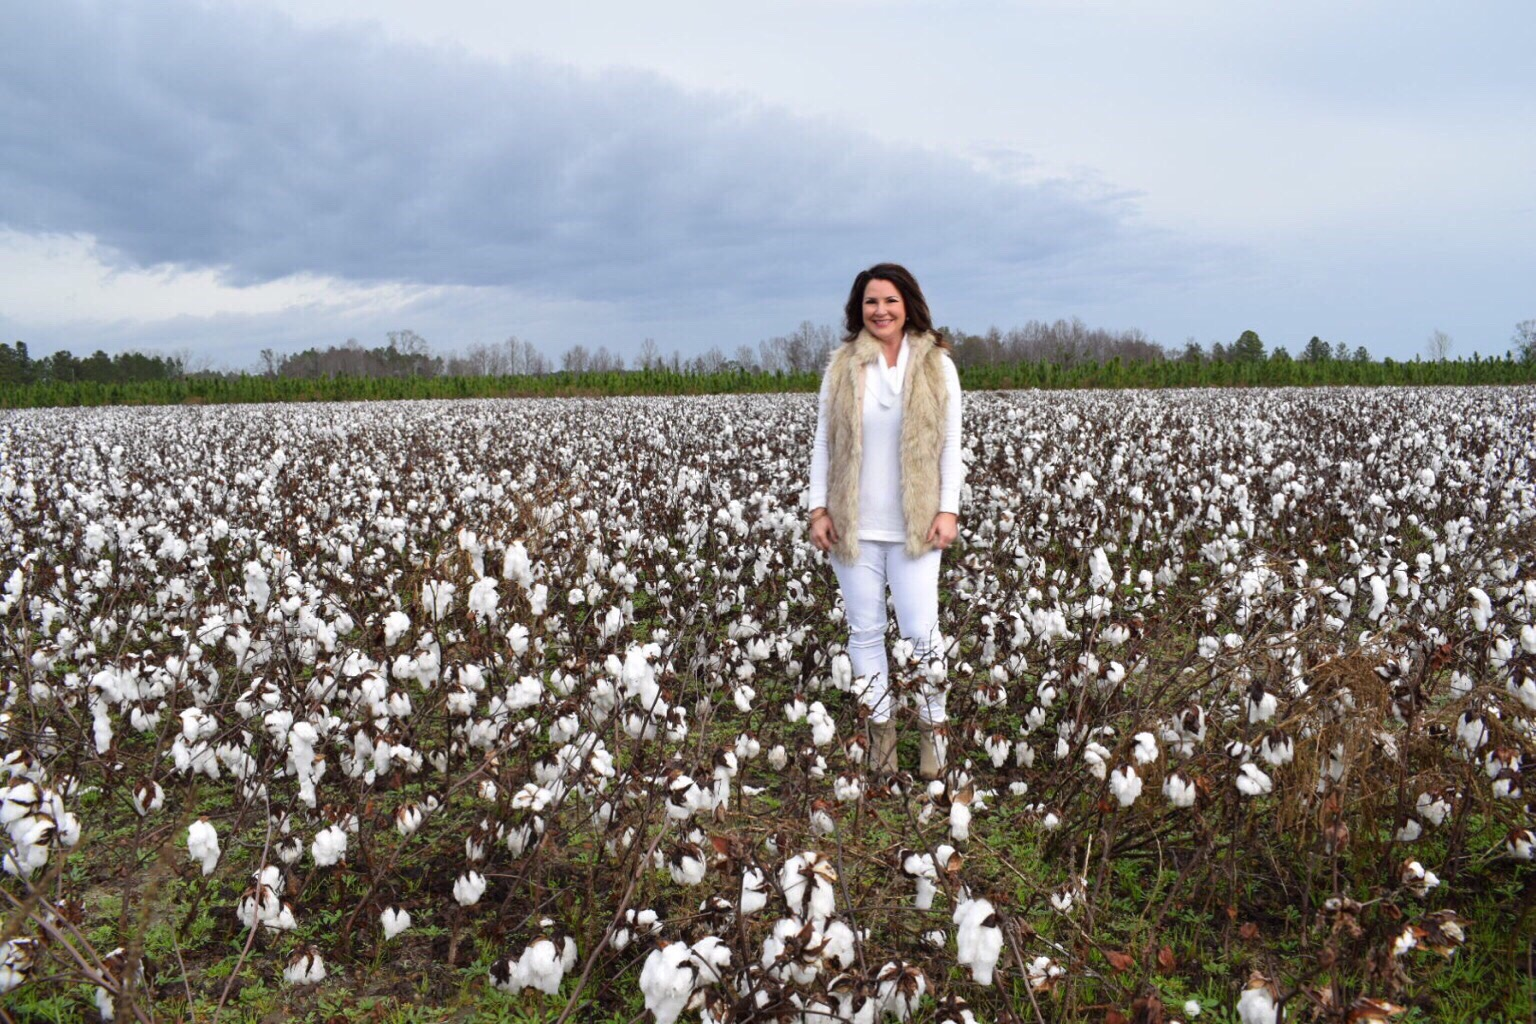 Kim Bishop in the middle of a cotton field